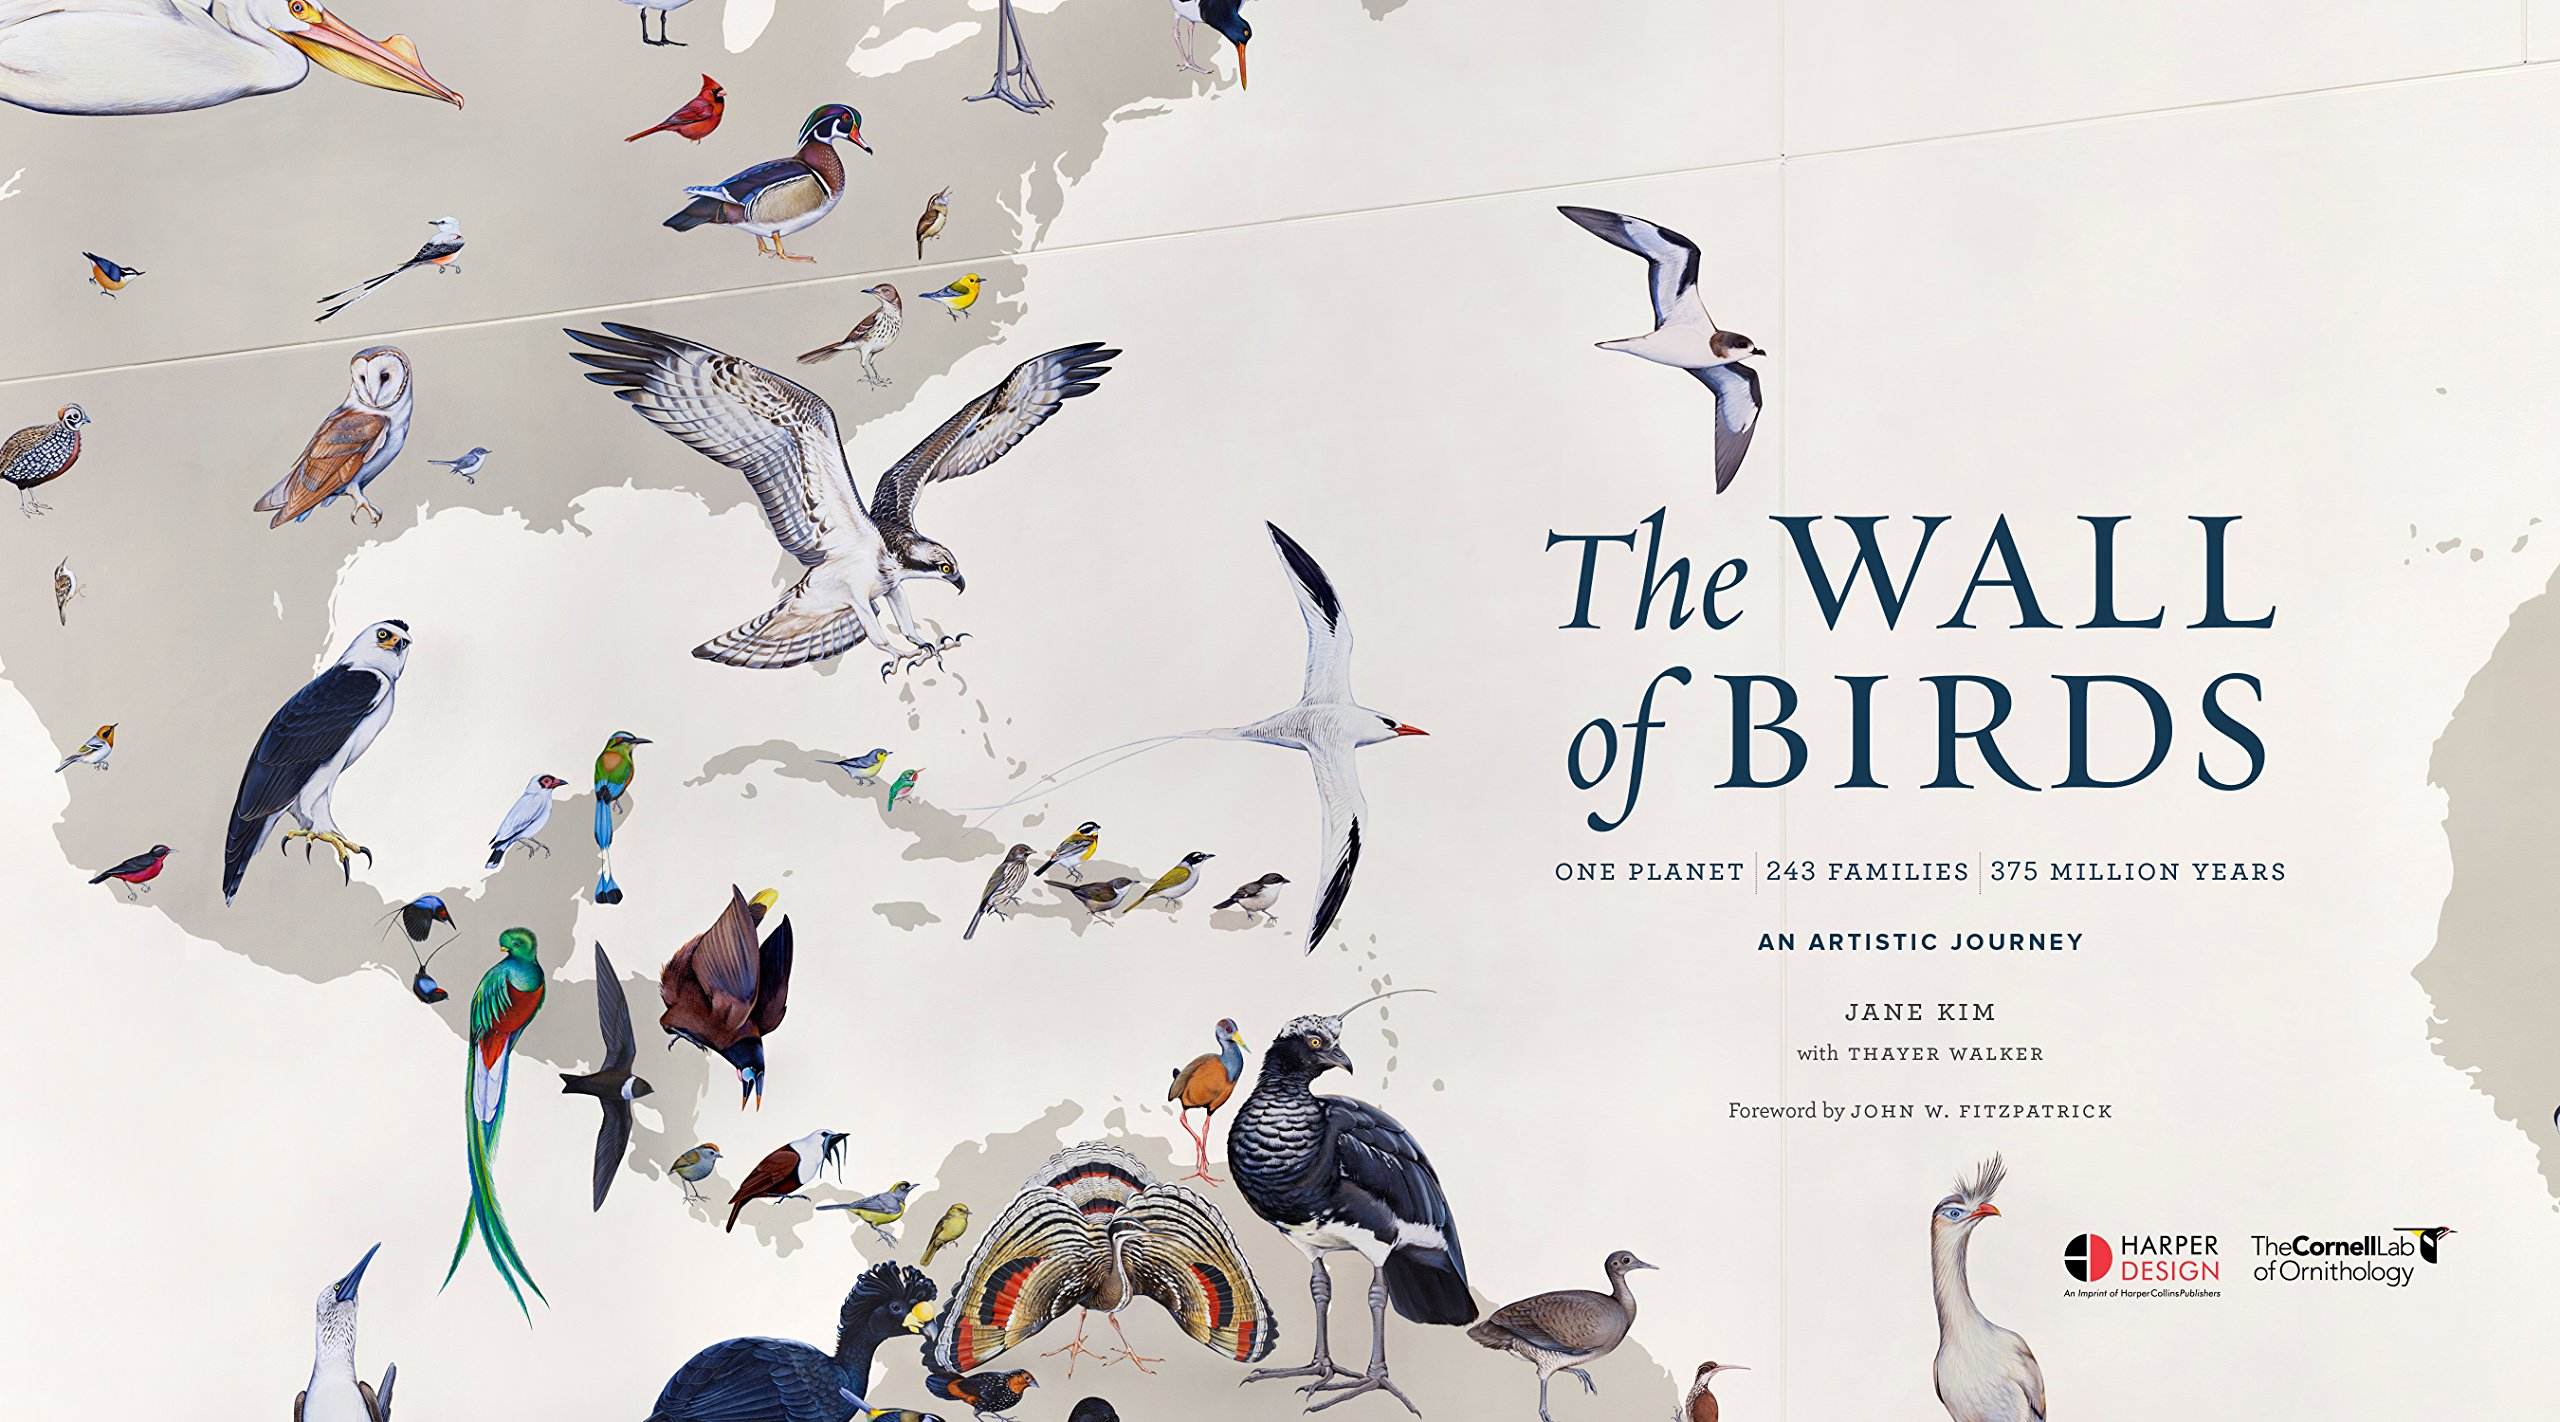 the wall of birds one planet 243 families 375 million years